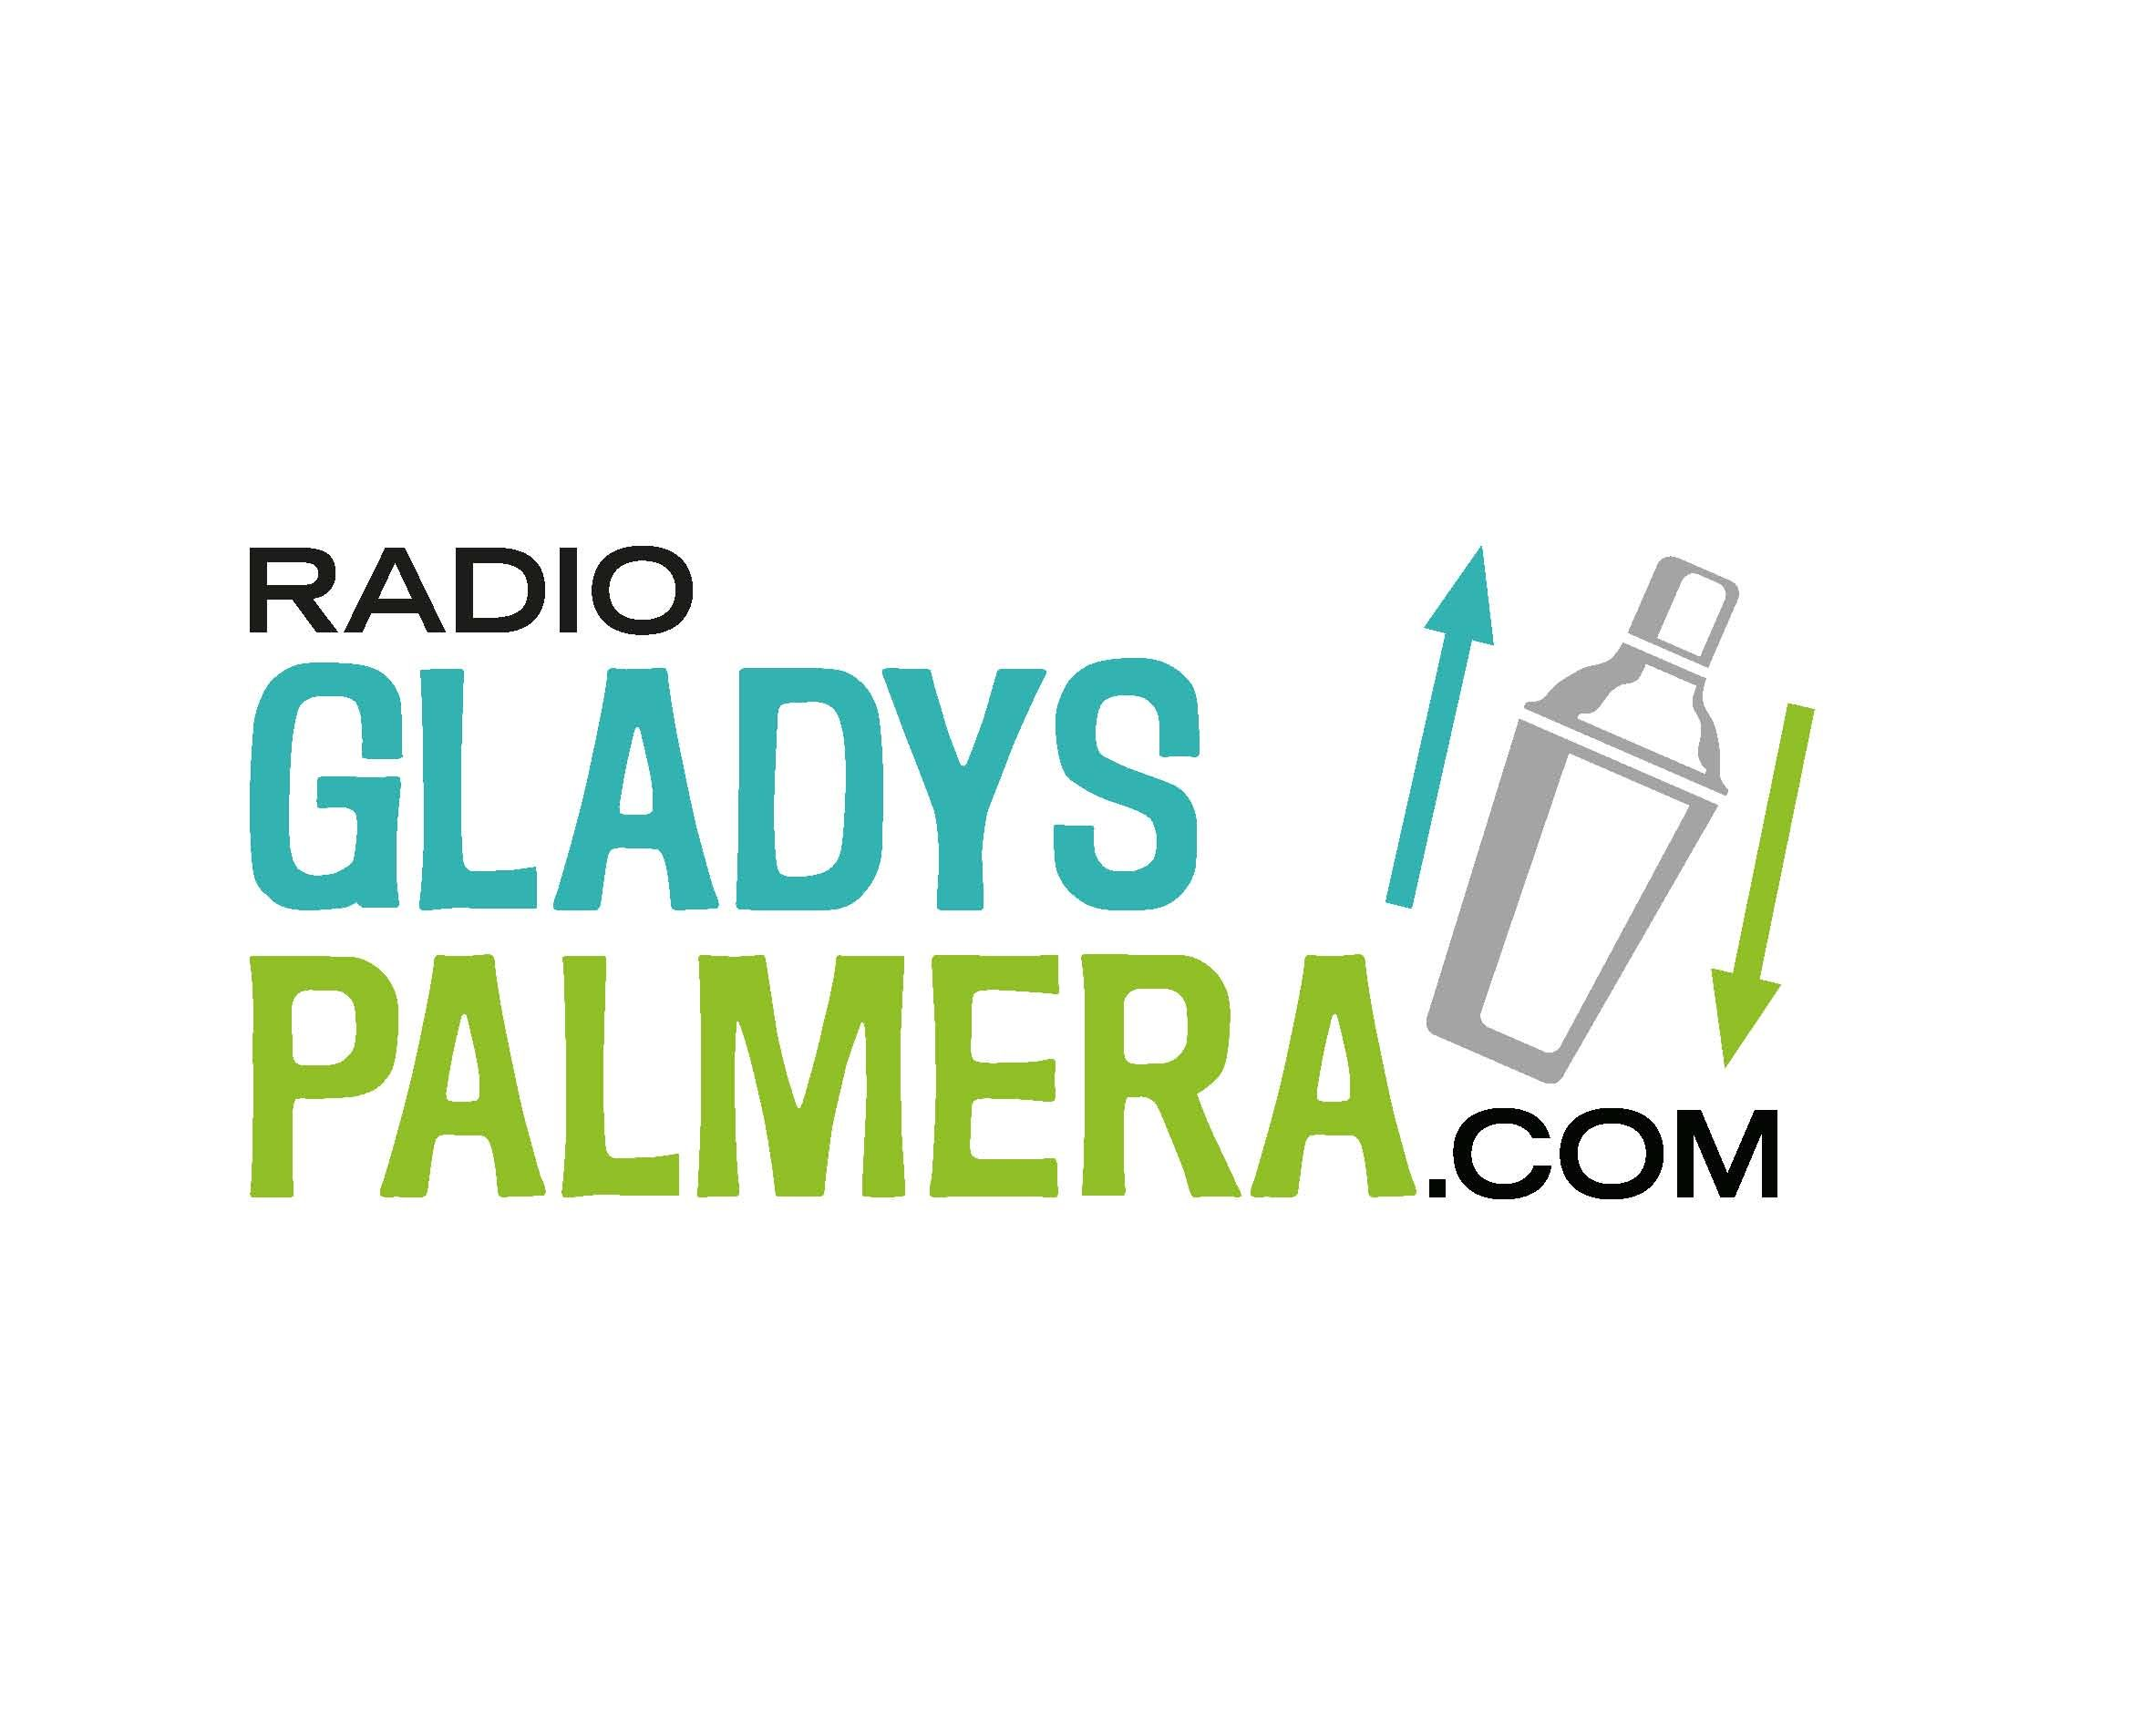 Sounds From Spain - RADIO GLADYS PALMERA